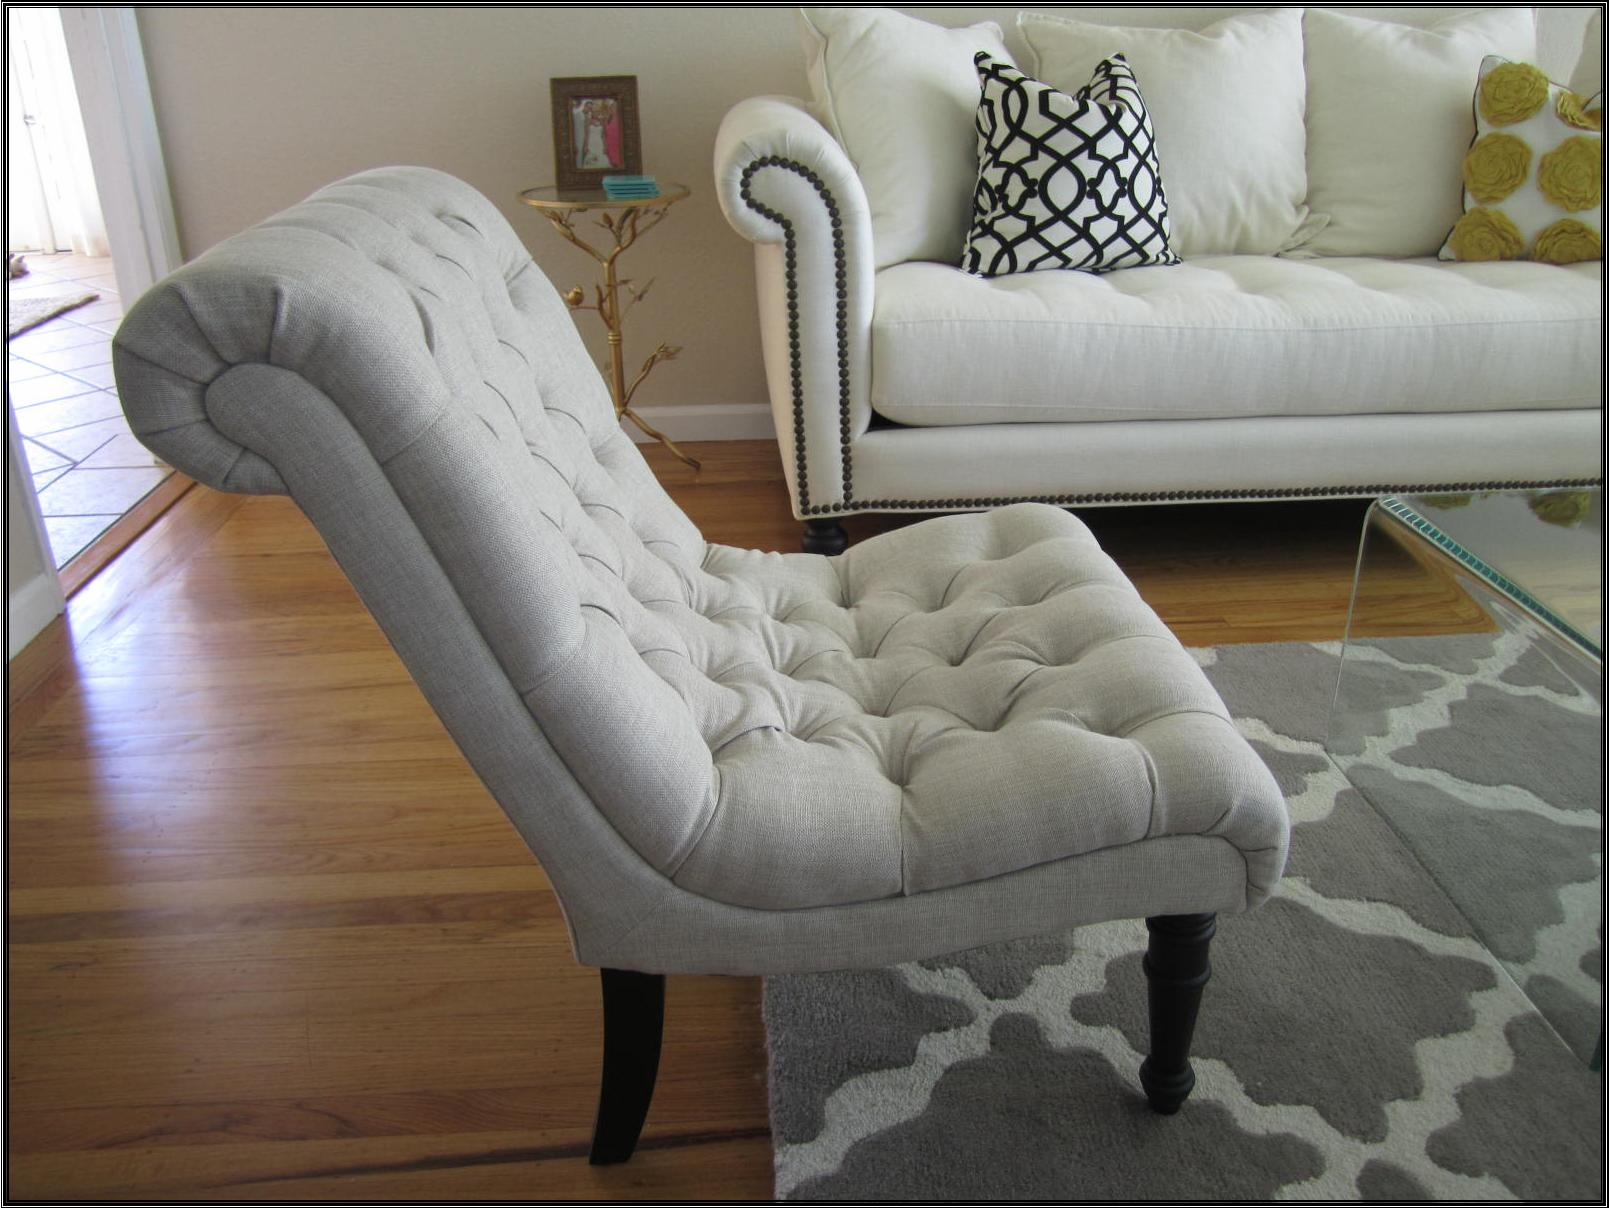 Modern Linen beige tufted lounge chairs are from Overstock – Super